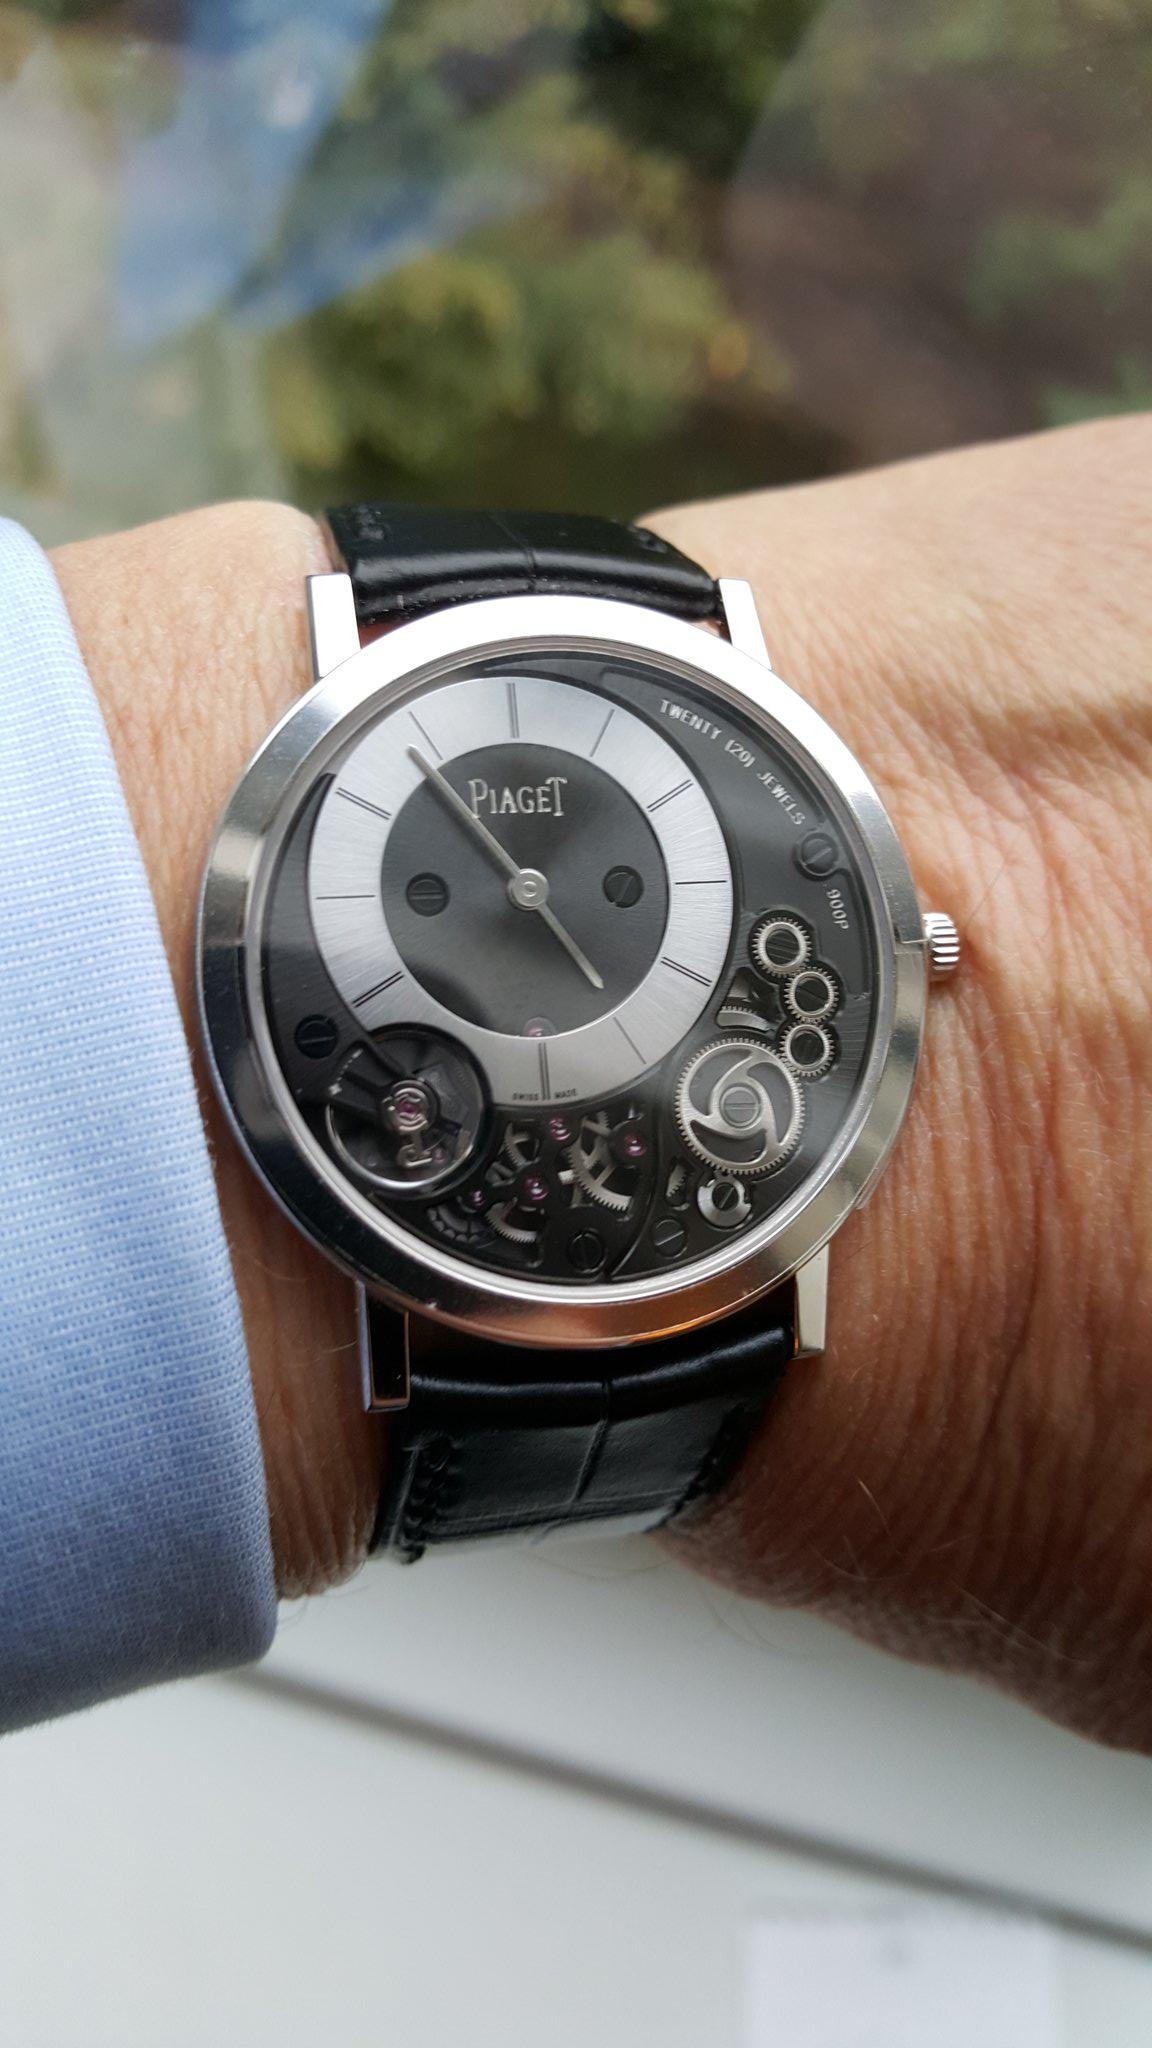 My new @Piaget 900P the world's thinnest  mechanical watch.3.65mm thin 145 parts some as thin as a human  hair http://t.co/FMtQEkmP0n